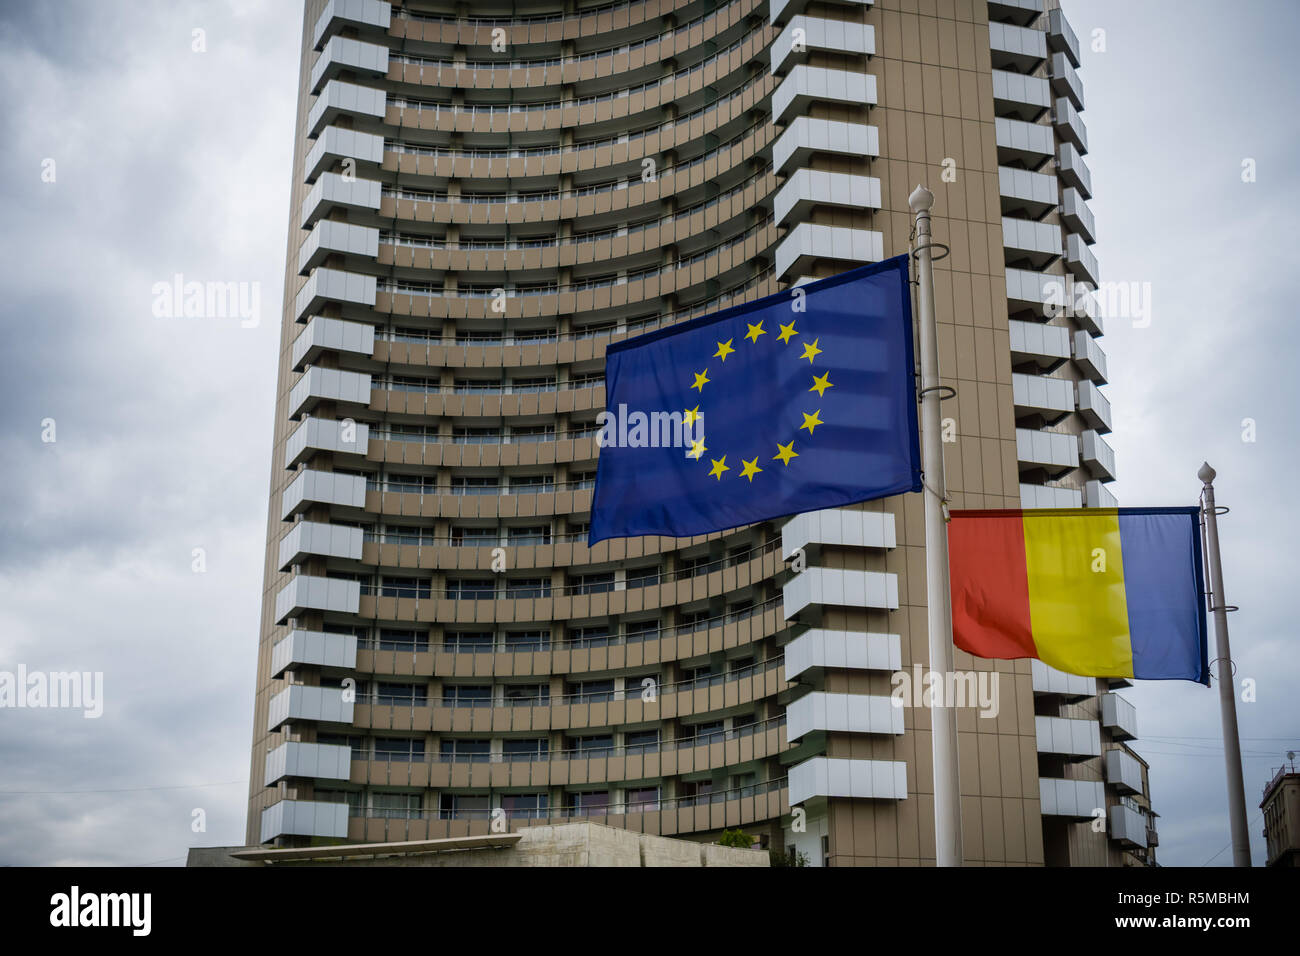 September 22, 2017 Bucharest/Romania - The Romanian and European Union flags raised in front of Intercontinental Hotel in Univestitatii Square - Stock Image